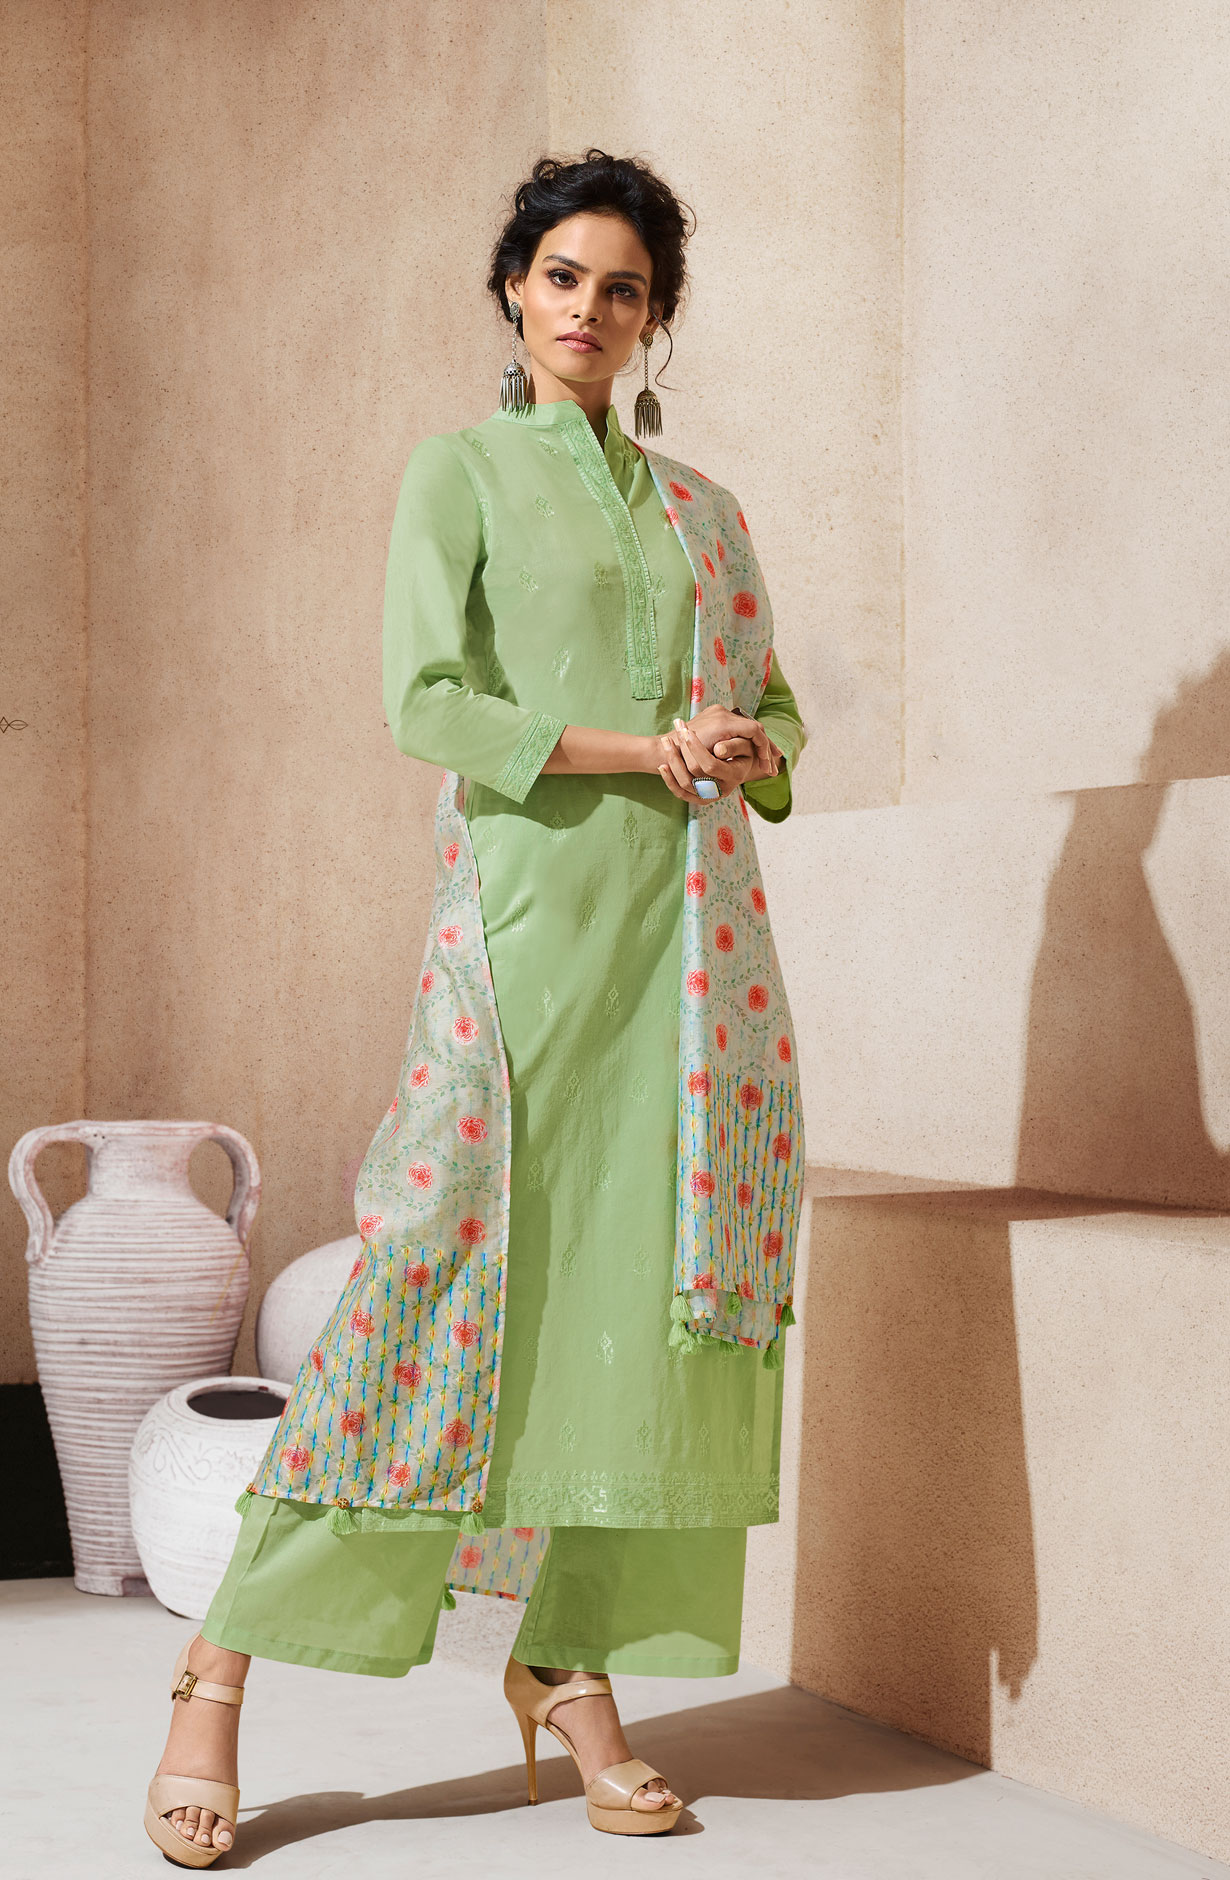 56e4b9a252b Shop Embroidered Cotton Ready to Stitch Light Green Salwar Kameez Sets